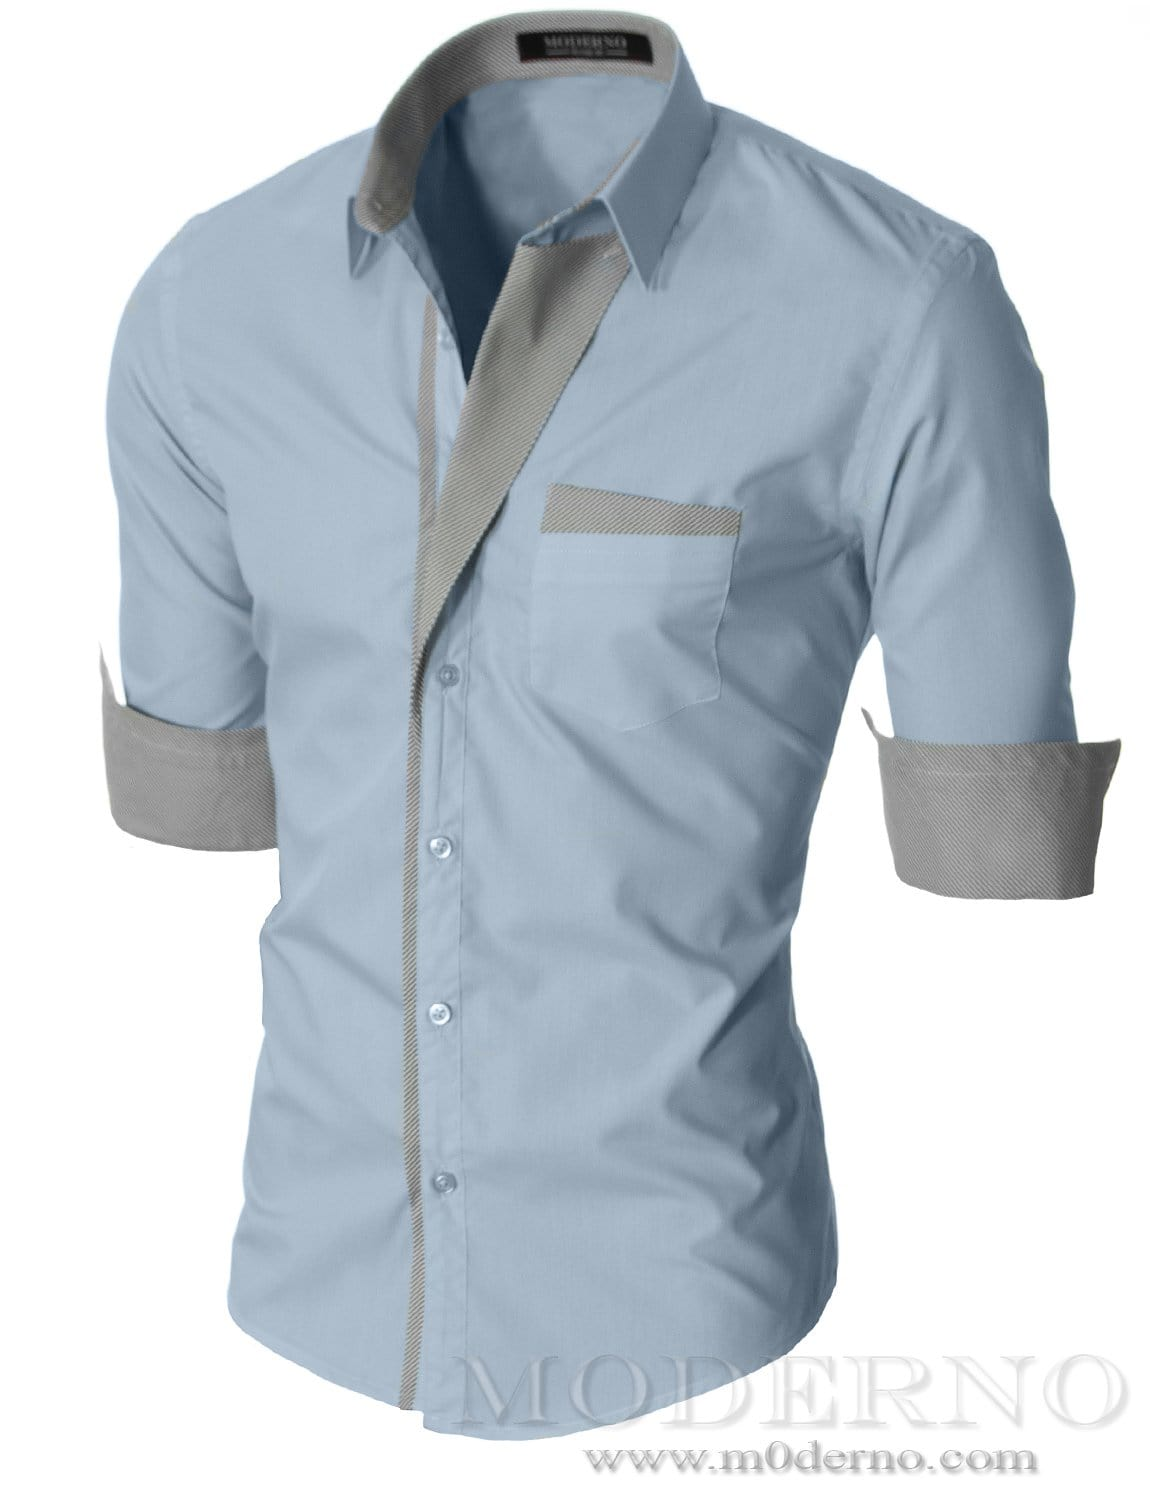 Slim Fit Mens Sky Button Down Shirt By Moderno Vgds41ls